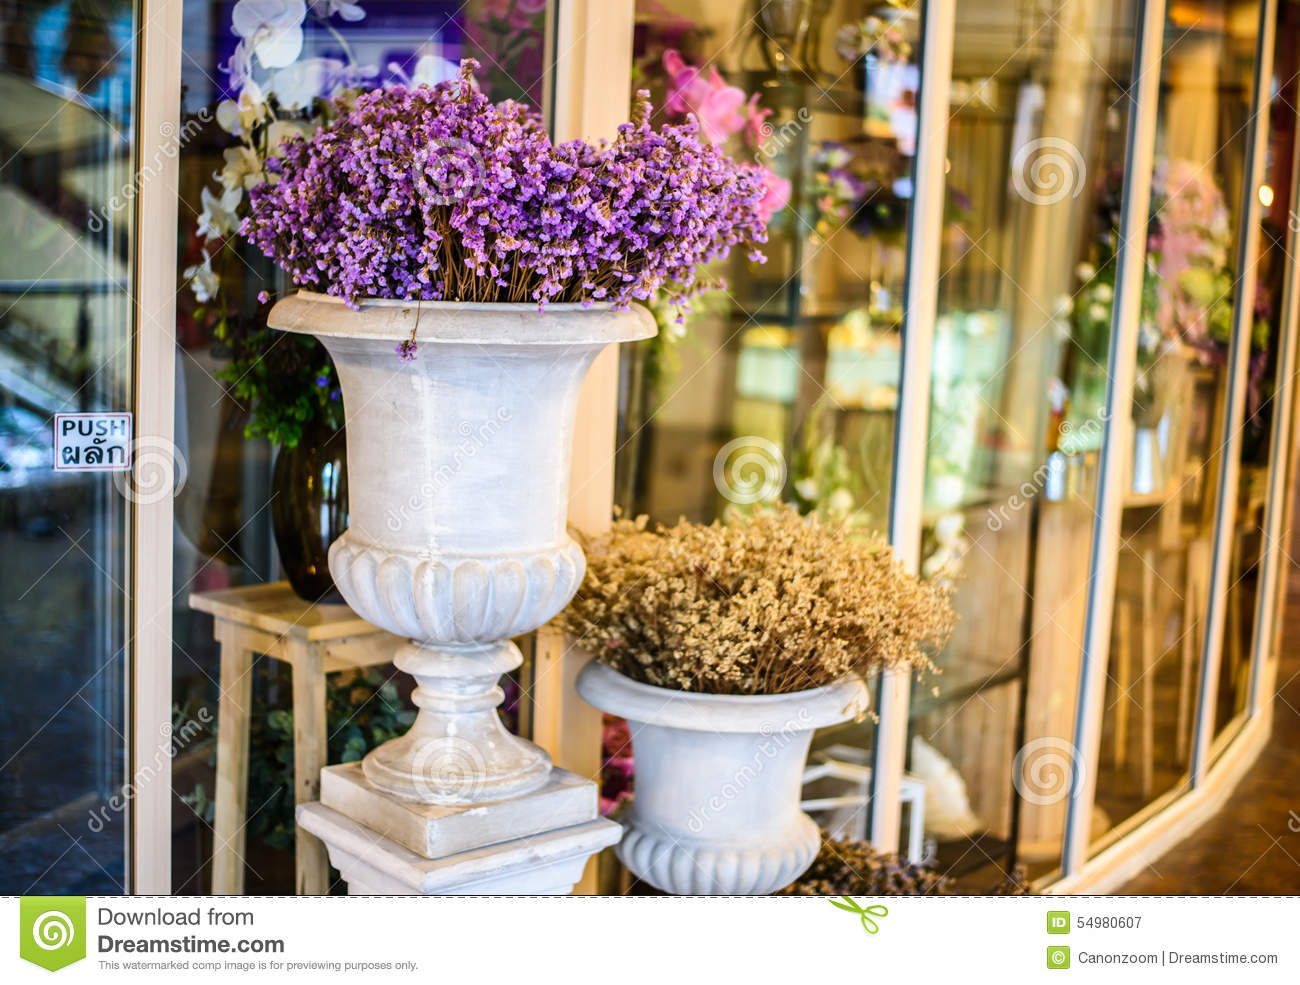 Flowers In Vase Outside Of Flower Shop Stock Image - Image of bloom on flower shop furniture, flower shop candles, flower shop window displays, flower shop decor, flower shop tools, flower shop plants, flower shop containers, flower shop linens, flower shop accessories, flower shop cards, flower shop flowers, flower shop aprons, flower shop storage, flower shop bouquets, flower shop glasses, flower shop buckets, flower shop artwork, flower shop games, flower shop posters, flower shop signs,